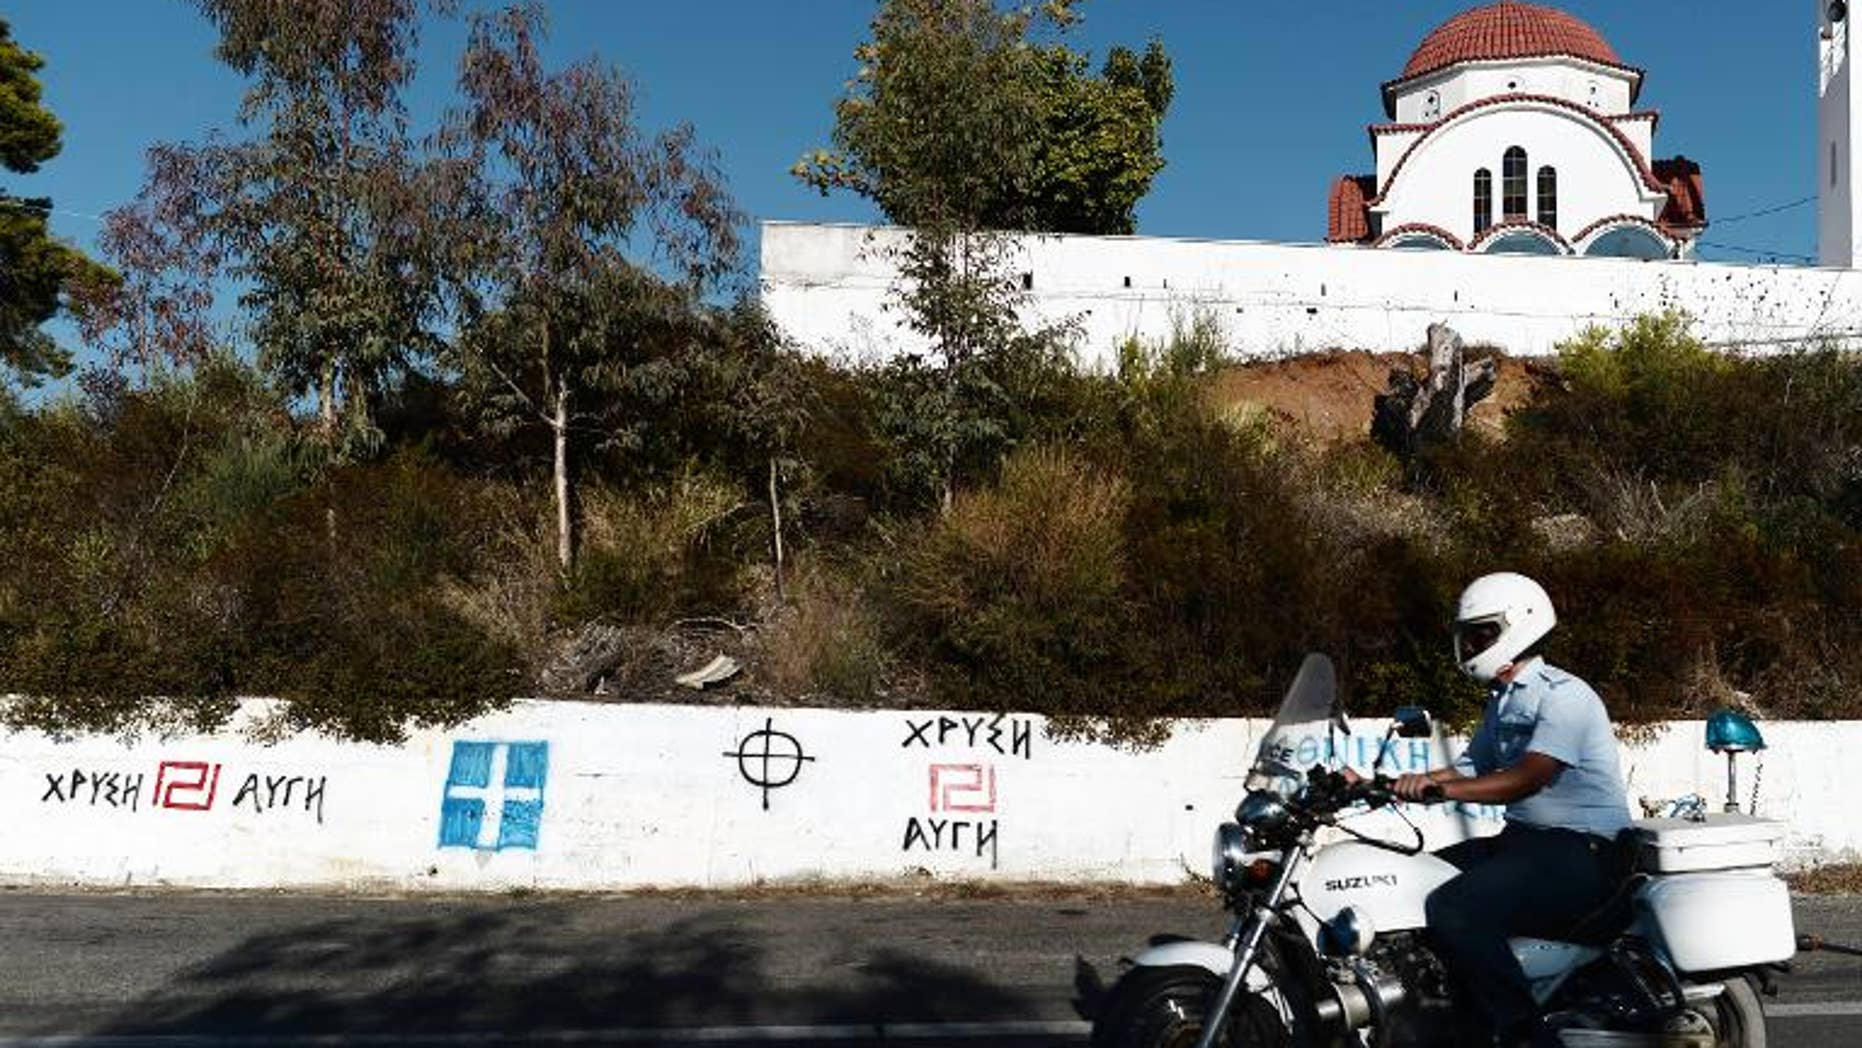 A policeman rides his motorcycle in front of Golden Dawn and nationalist graffiti in southern Greece, on September 29, 2013. Greek police swooped on the neo-Nazi Golden Dawn party, arresting its leadership and hunting for dozens of members across the country in a crackdown sparked by the murder of a leftist musician. AFP PHOTO / ARIS MESSINIS